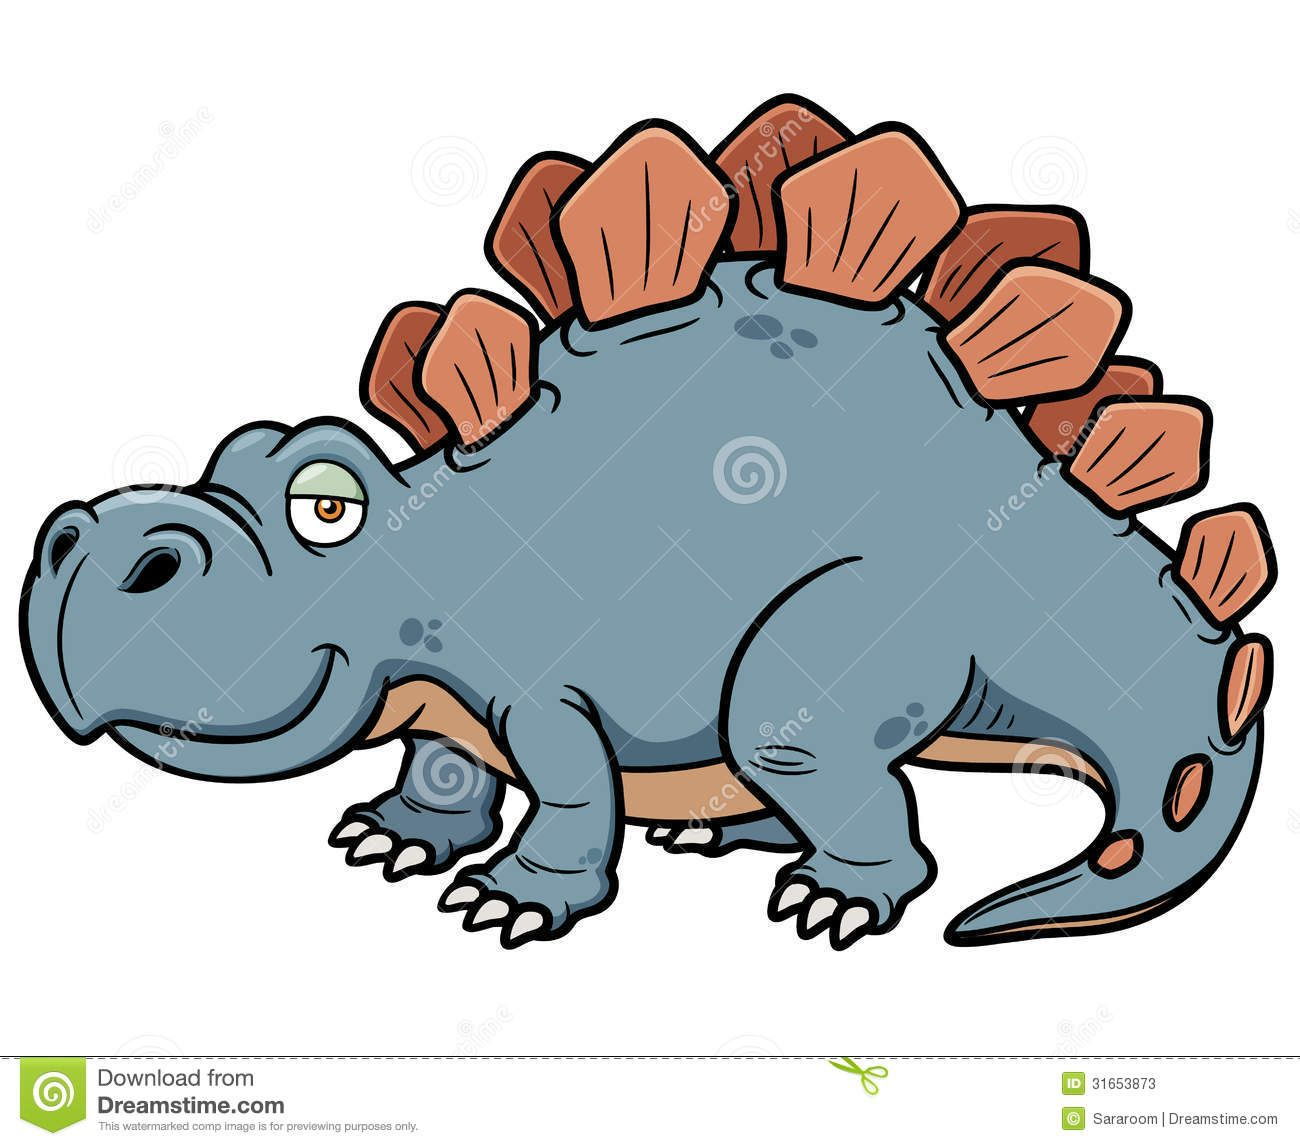 cartoon dinosaur stegosaurus - Google Search | детское | Pinterest ...